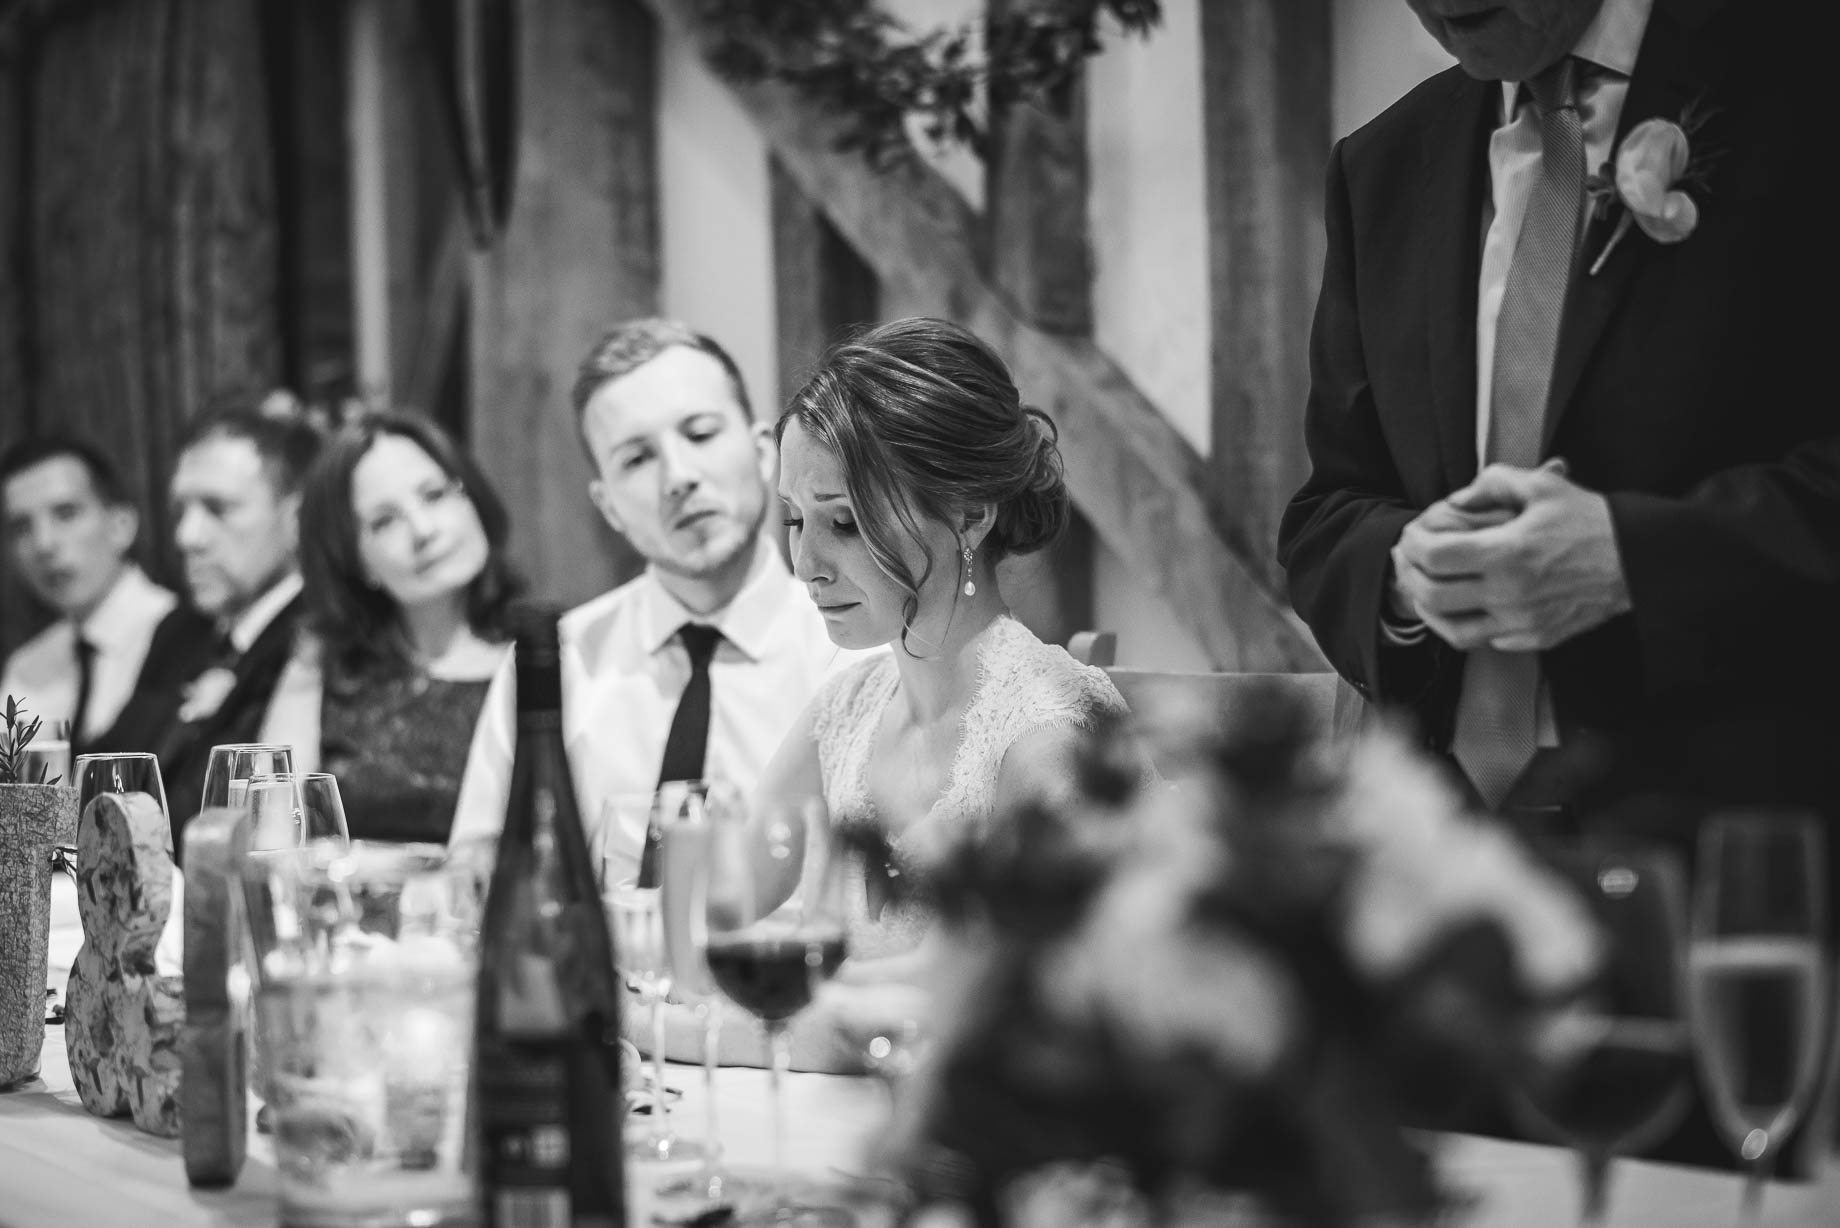 Surrey Wedding Photography by Guy Collier - Becca and James (132 of 145)